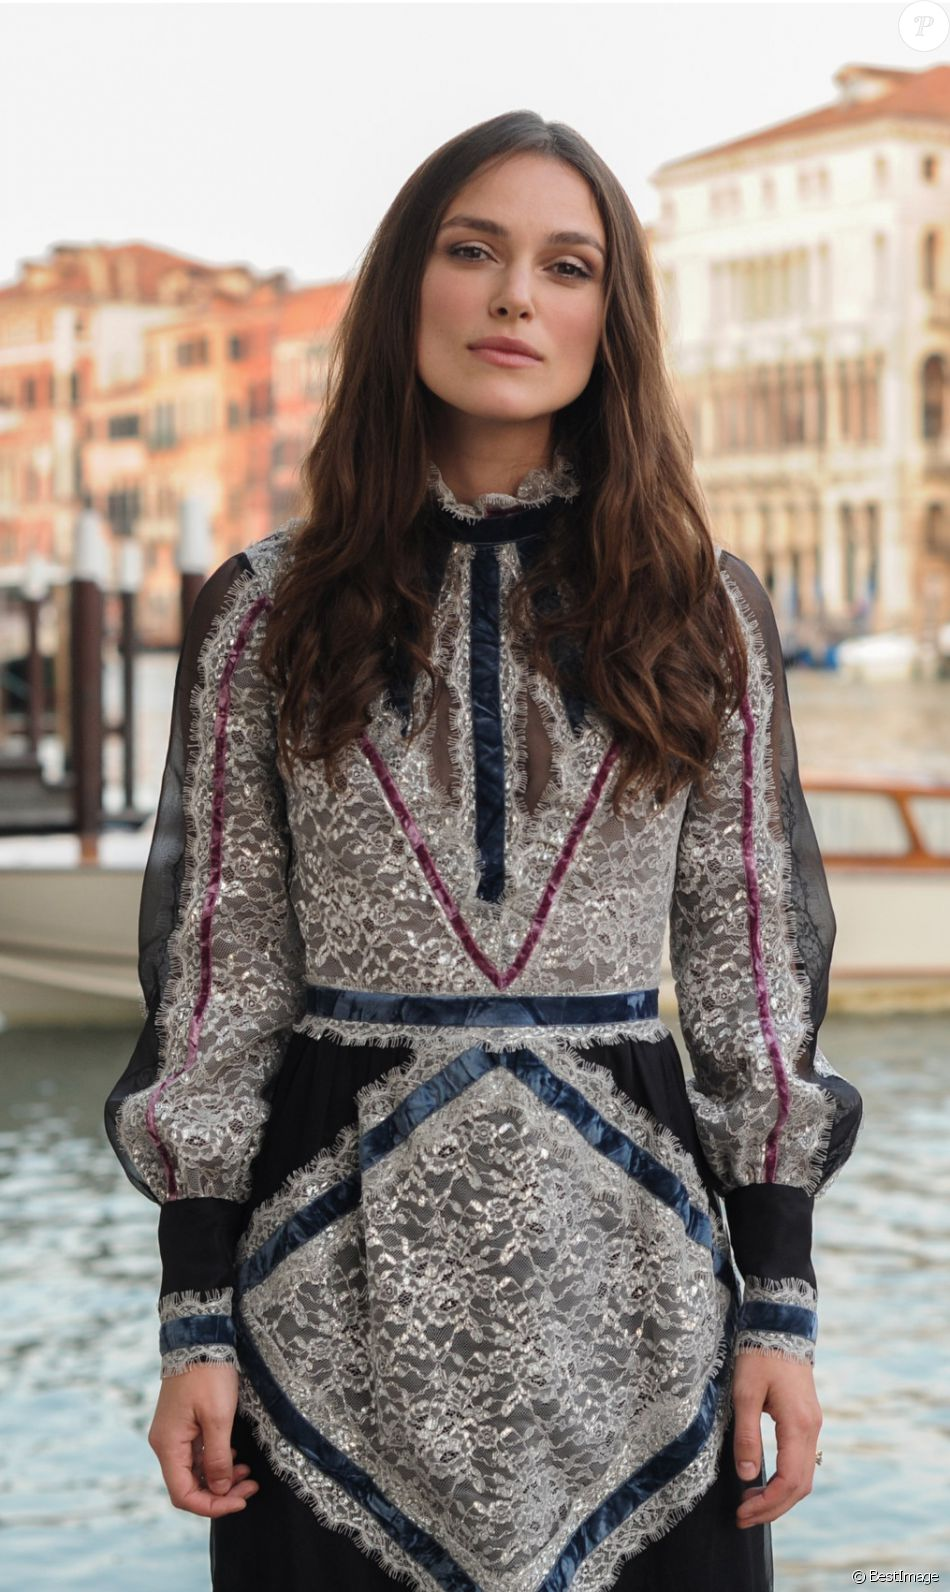 Keira Knightley lors du dîner MyTheresa (mytheresa.com) au palais Papadopoli à Venise, le 26 mai 2016. Celebrities at Dinner MyTheresa (mytheresa.com) at Palace Papadopoli in Venice, Italy on May 26,